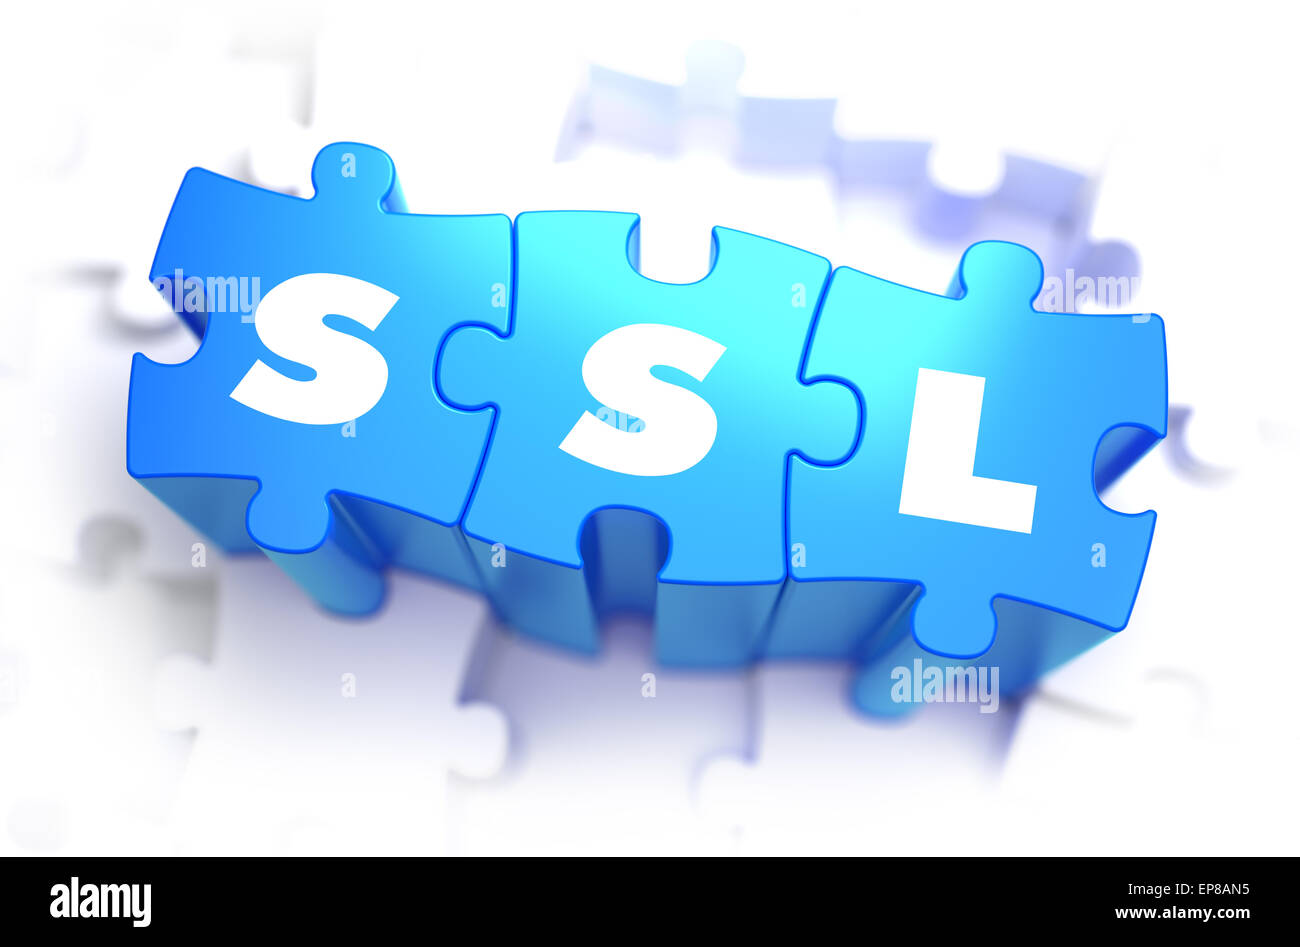 SSL - Secure Sockets Layer - Text on Blue Puzzles on White Background. 3D Render. - Stock Image